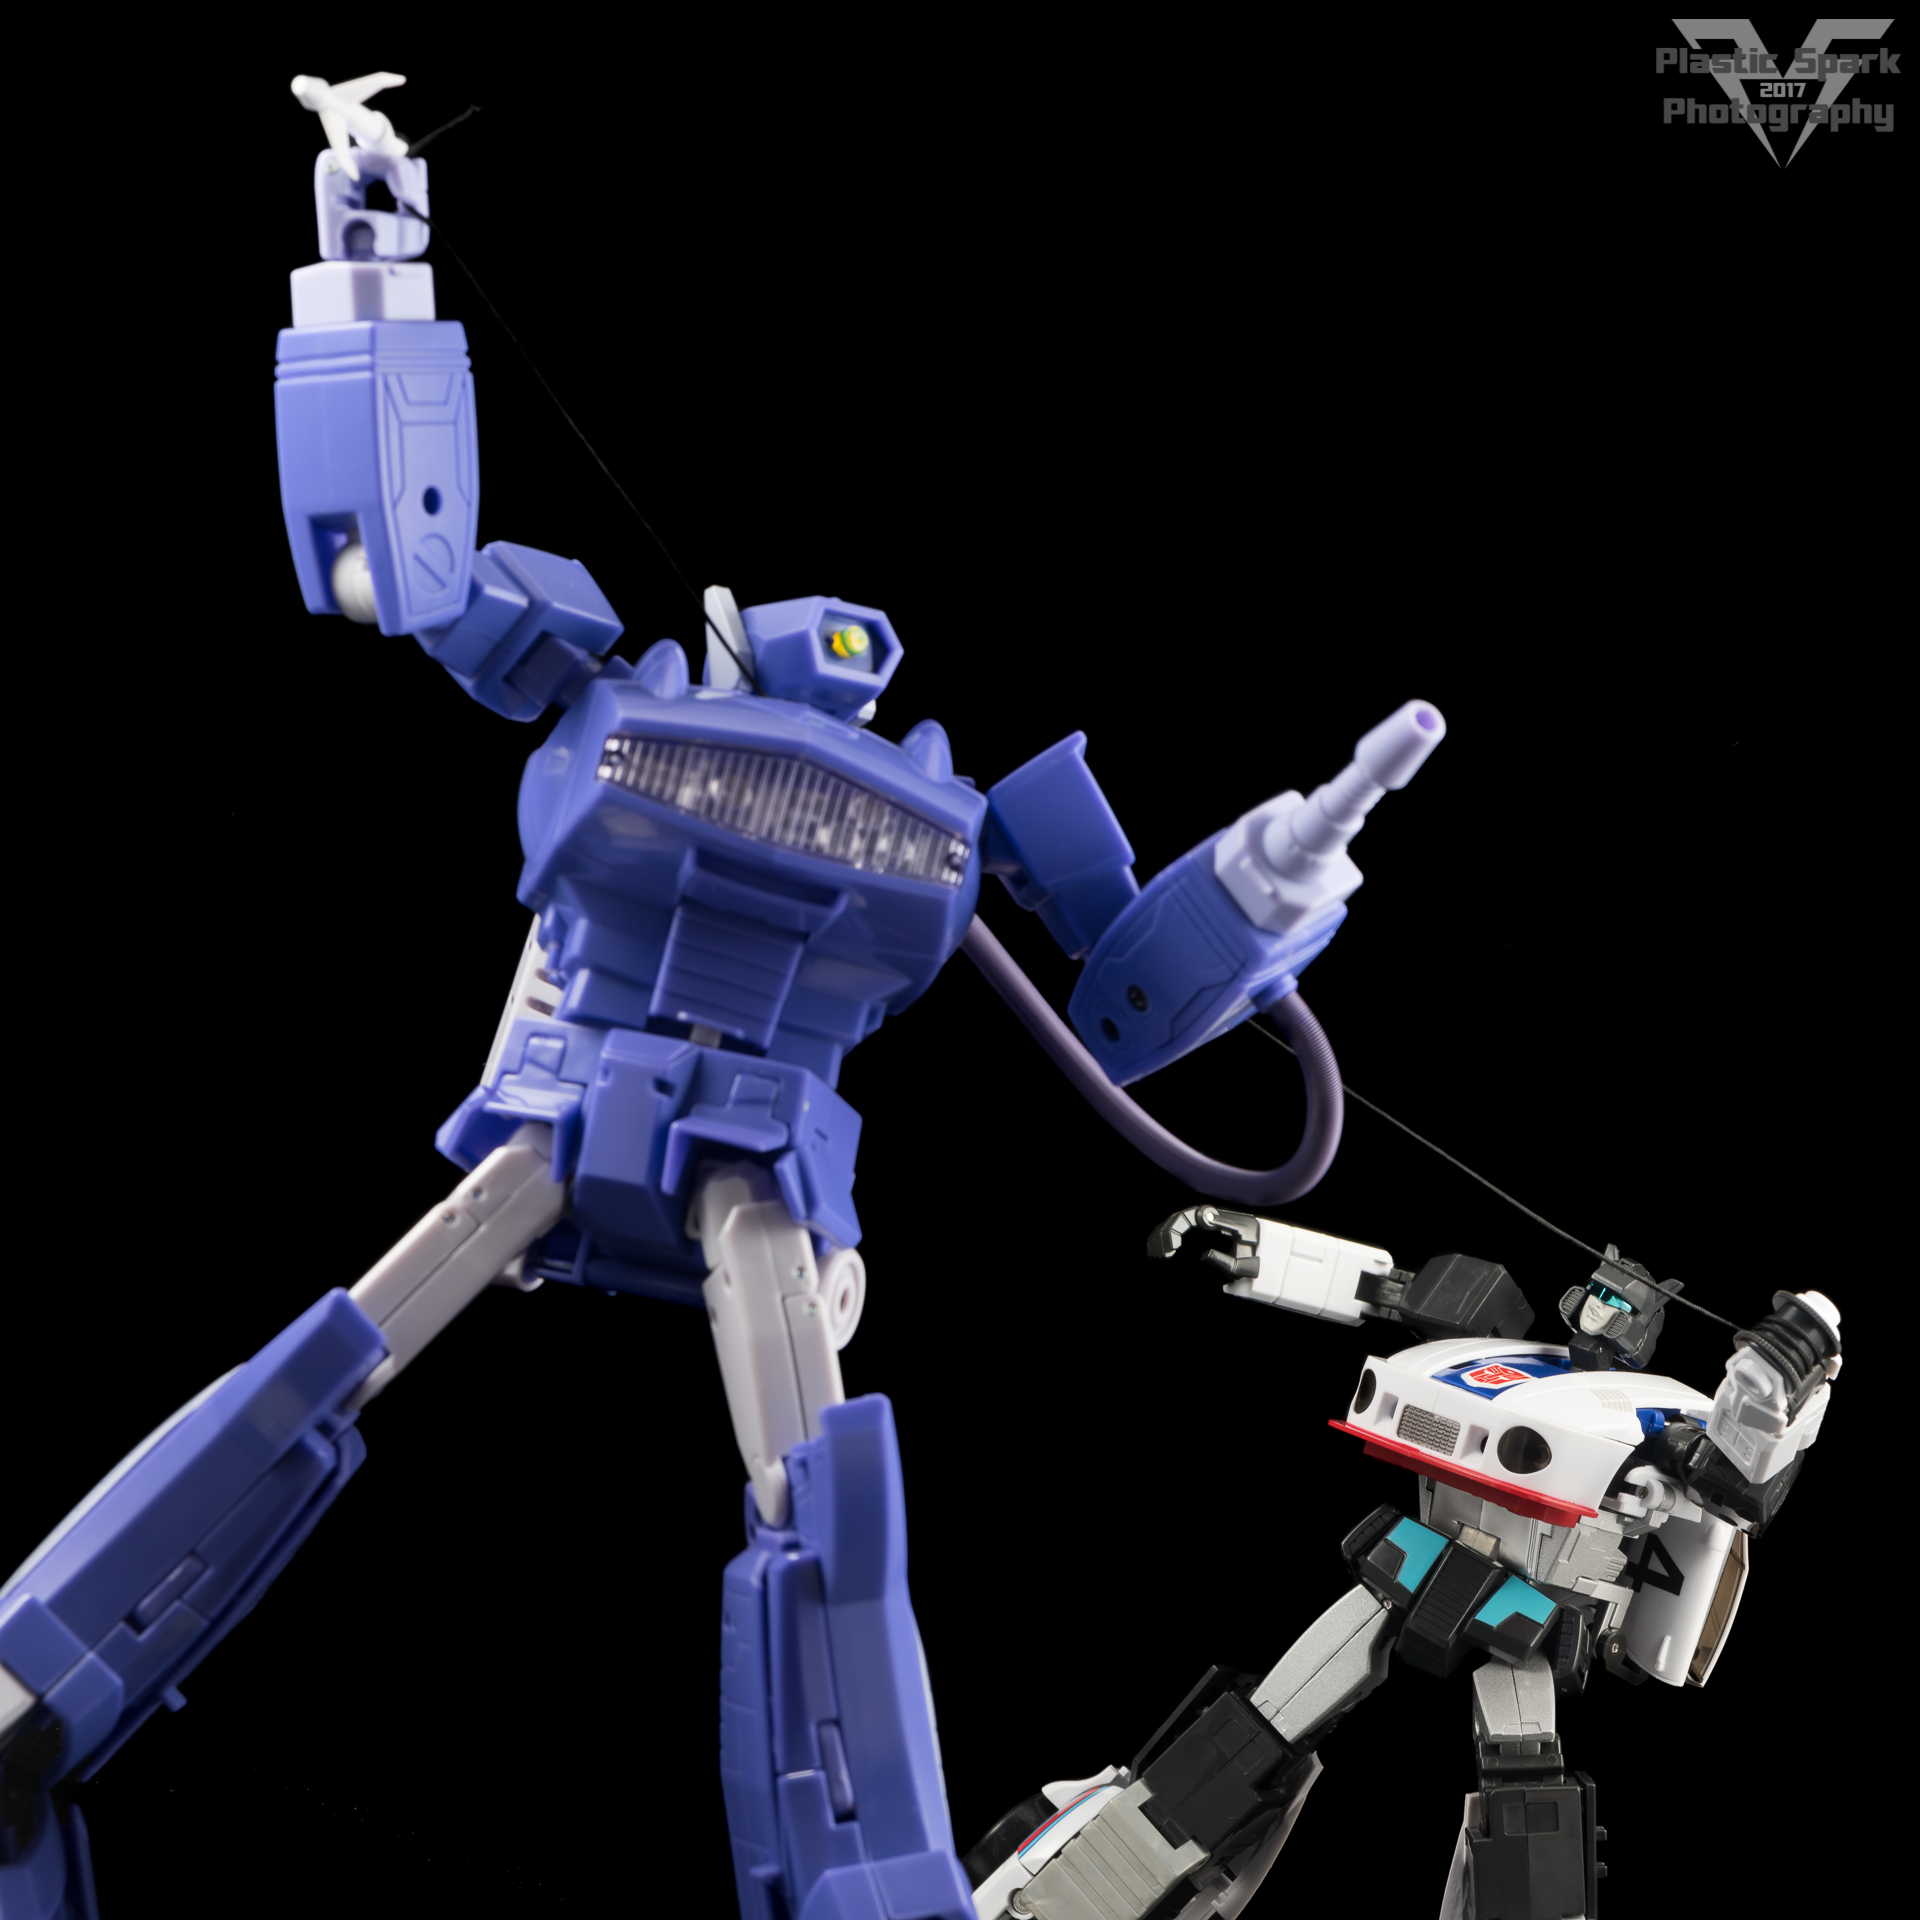 MakeToys-Re-Master-MTRM-09-Downbeat--(40-of-42).png